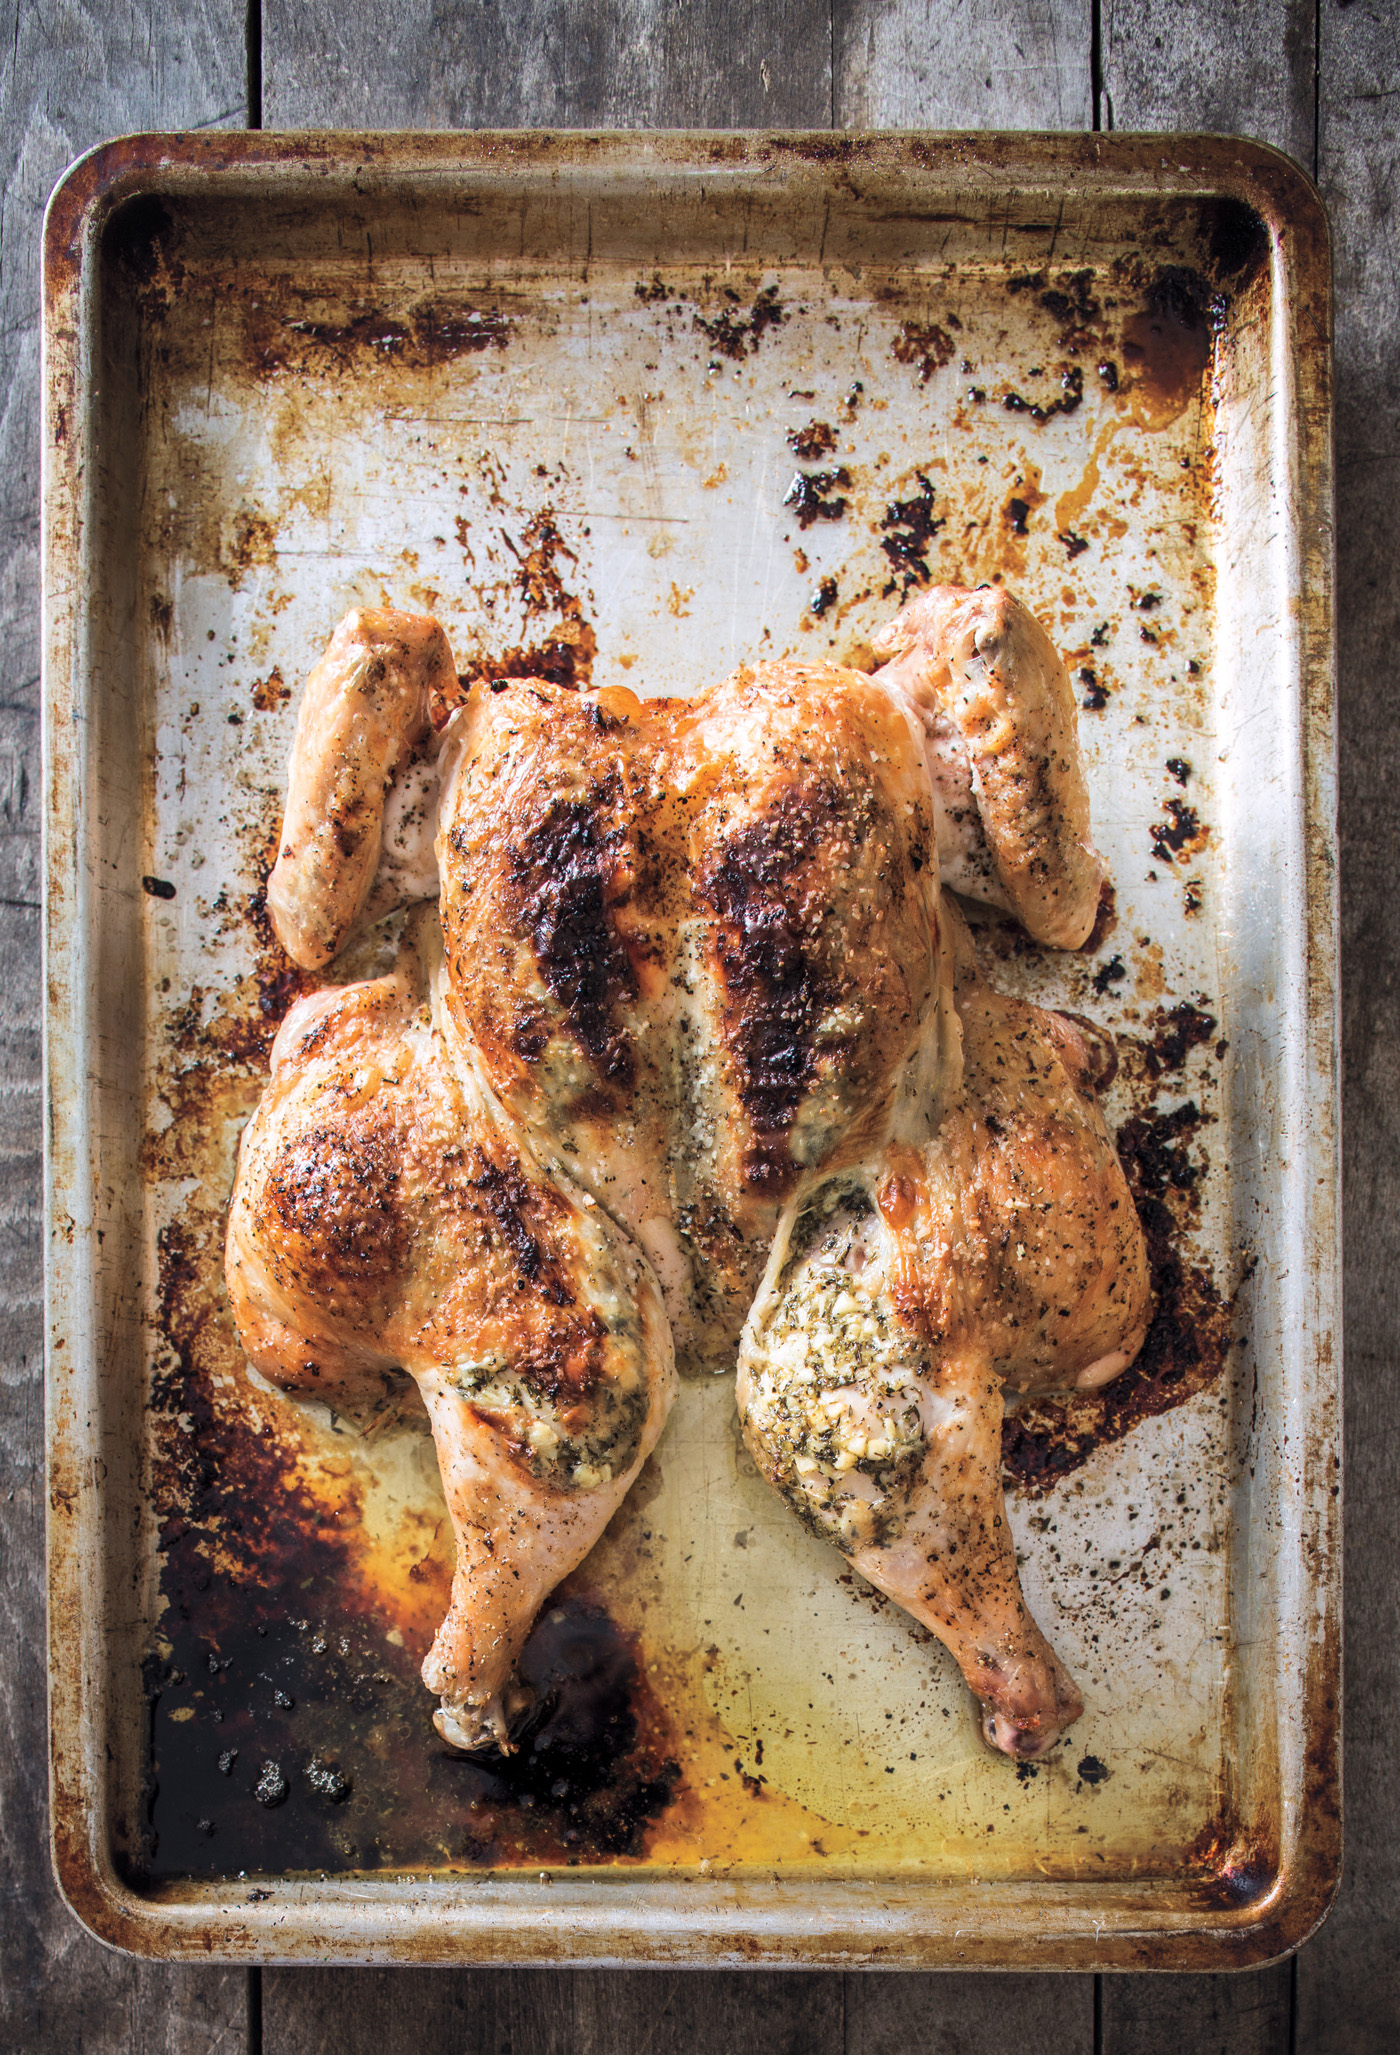 The Dinner Plan Cookbook: Roast Chicken | Cool Mom Eats The Dinner Plan Cookbook: Curried Coconut Noodles | Cool Mom Eats (Photo by Maura McEvoy for The Dinner Plan)